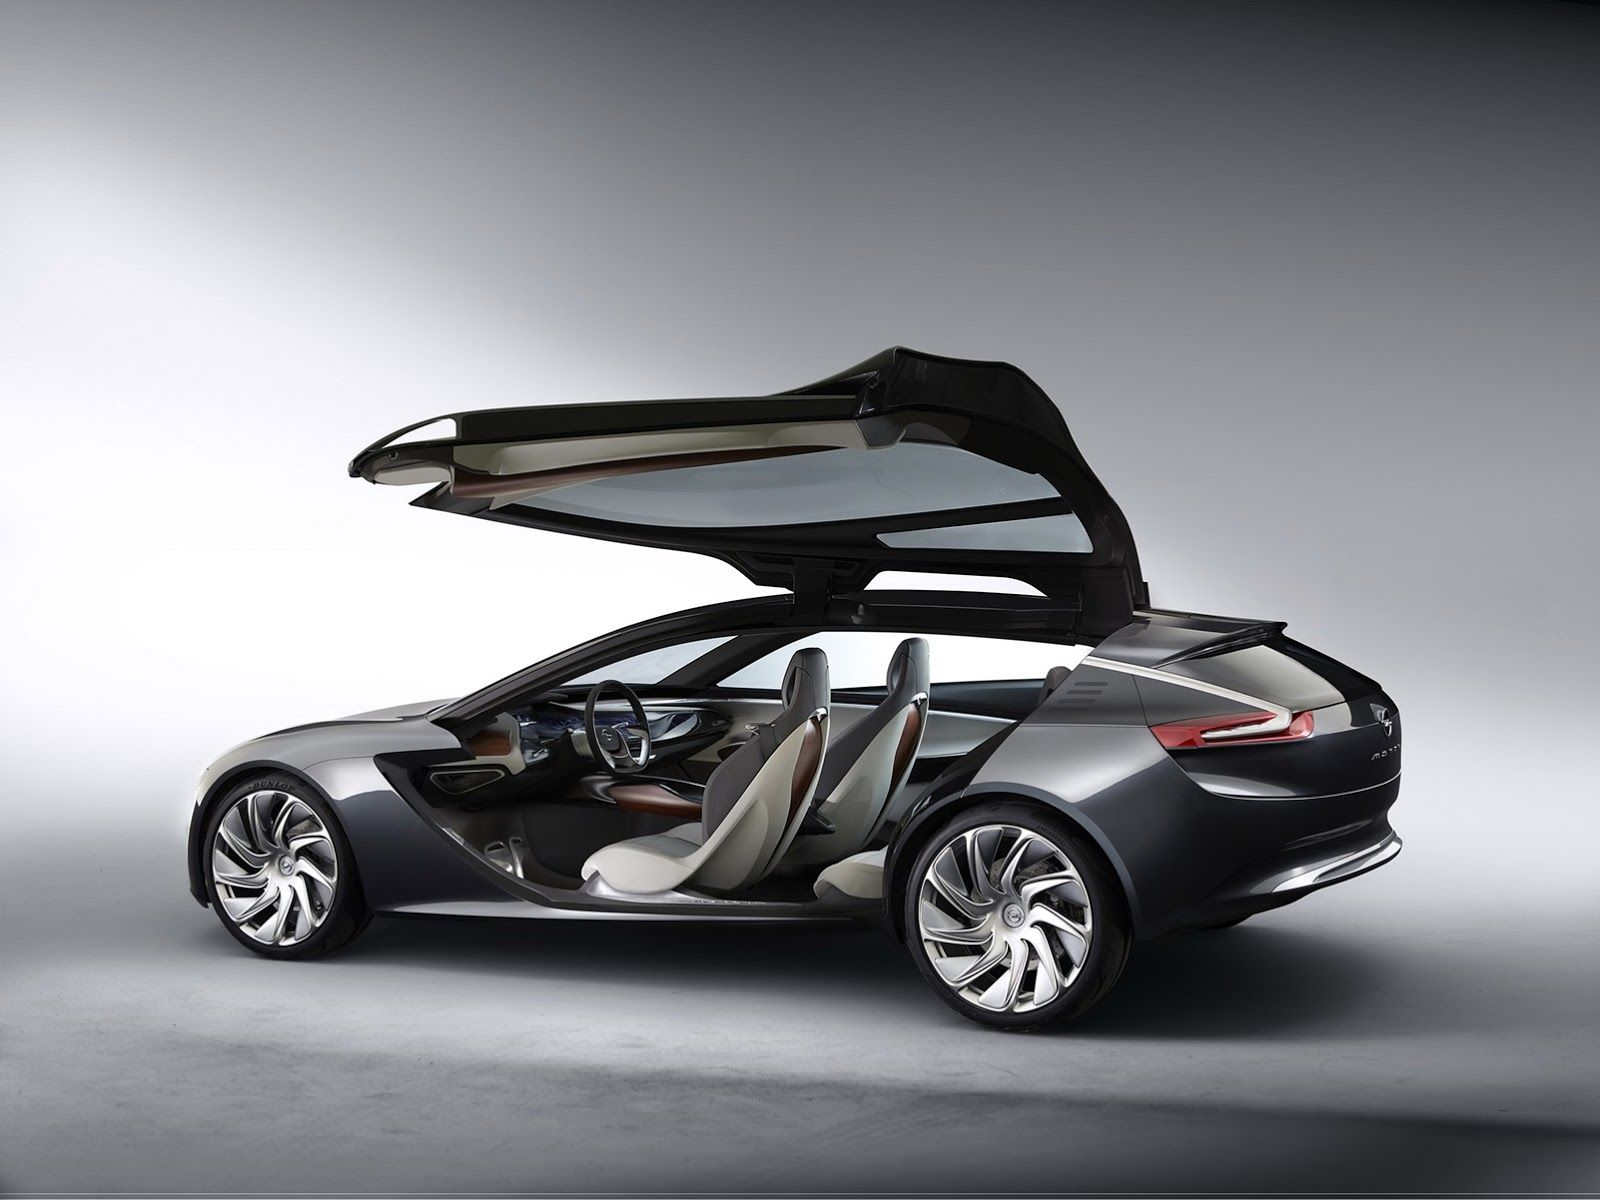 New Monza Concept Is Opel S Idea Of A Coupe With Wings For Doors Concept Cars Futuristic Cars Concept Car Design